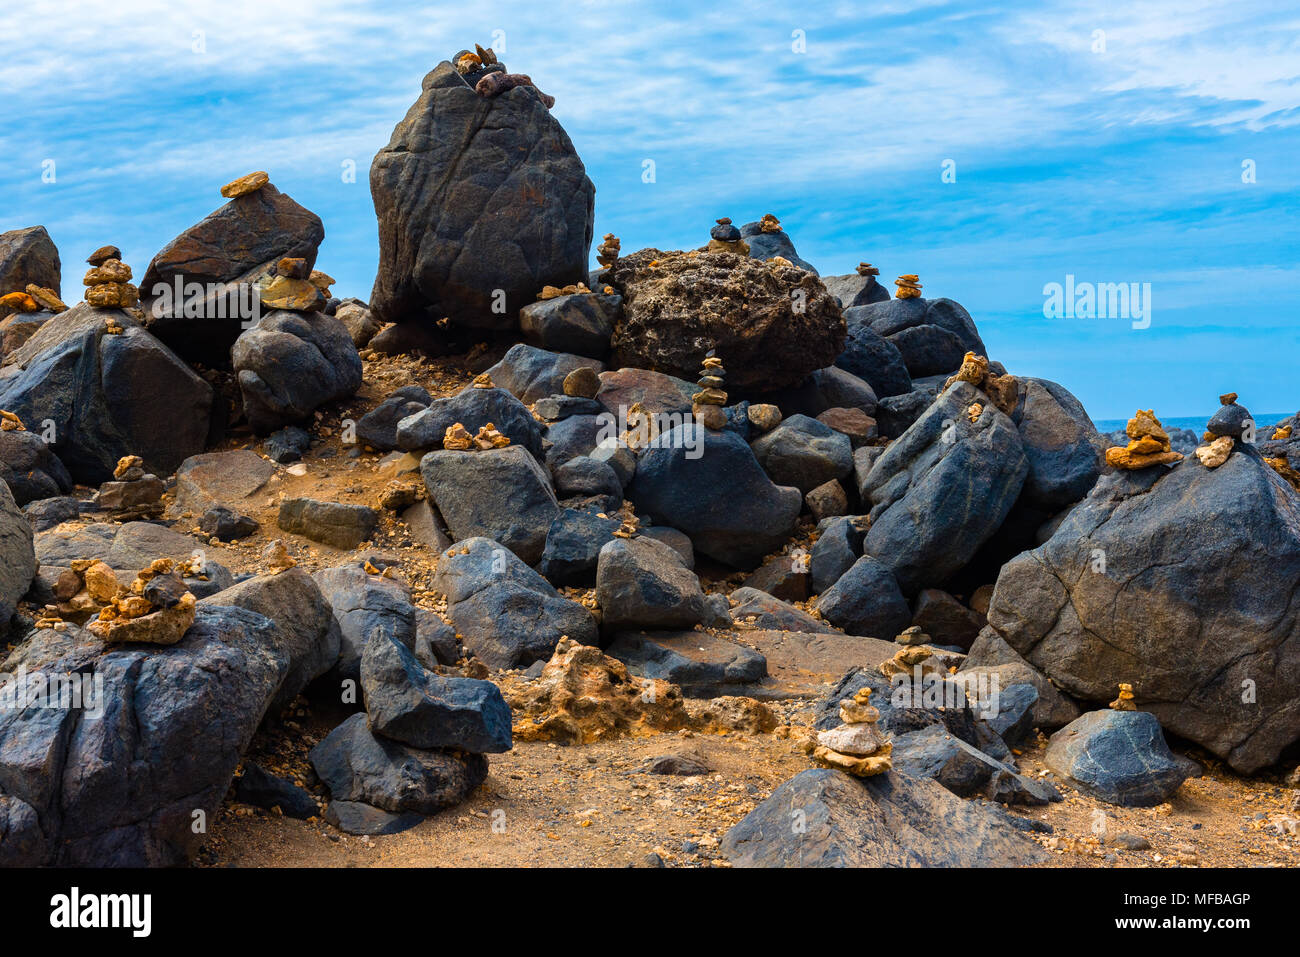 Large rocks topped with mementos lead to a hilltop on a beach in Aruba. - Stock Image